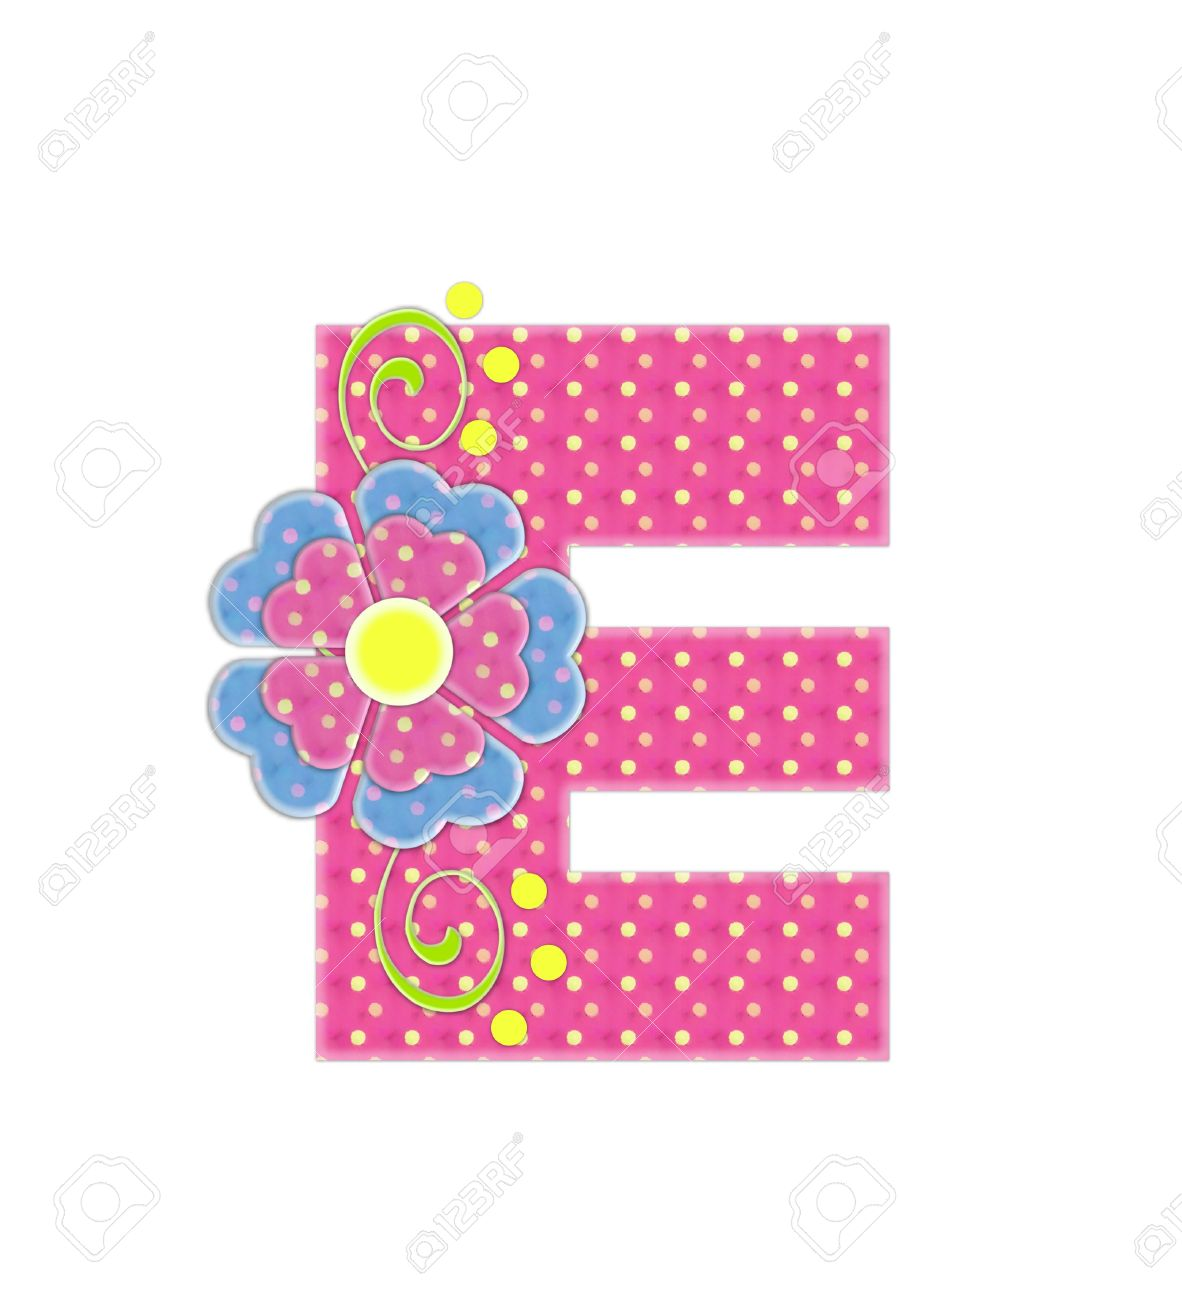 The letter Q in the alphabet set Bonita is pink with yellow polka dots